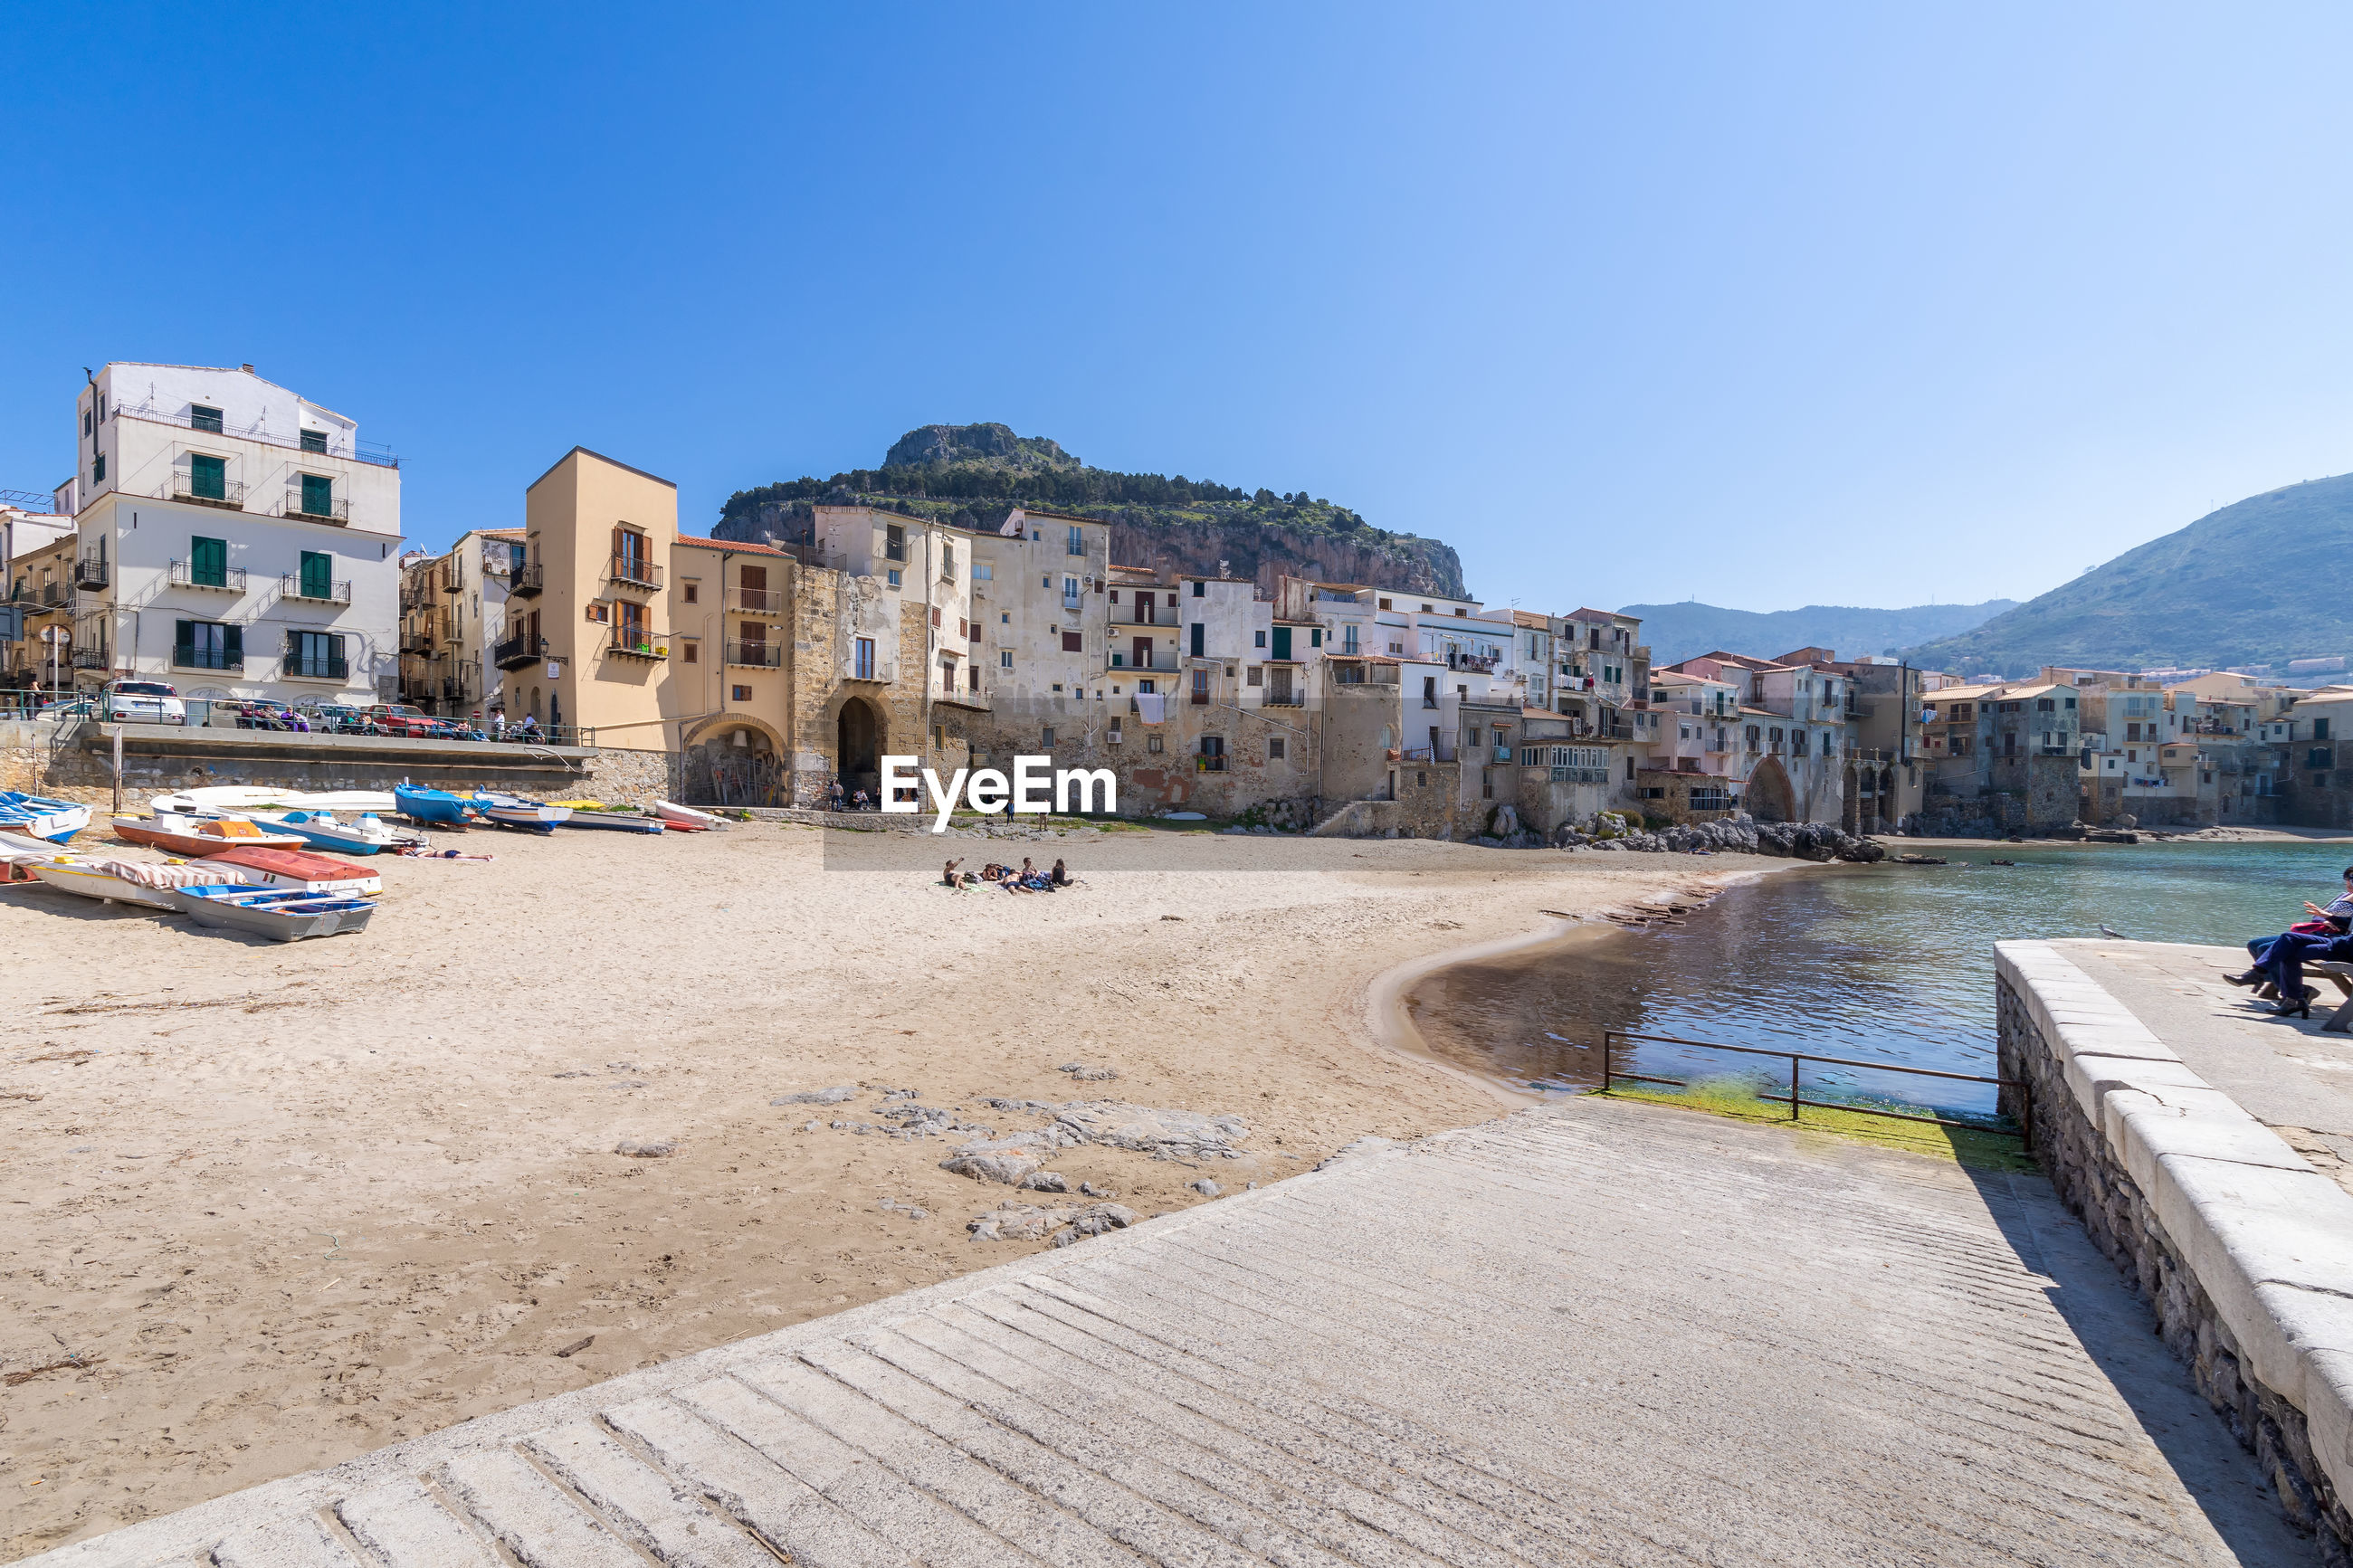 PANORAMIC VIEW OF BEACH BY BUILDINGS AGAINST CLEAR BLUE SKY